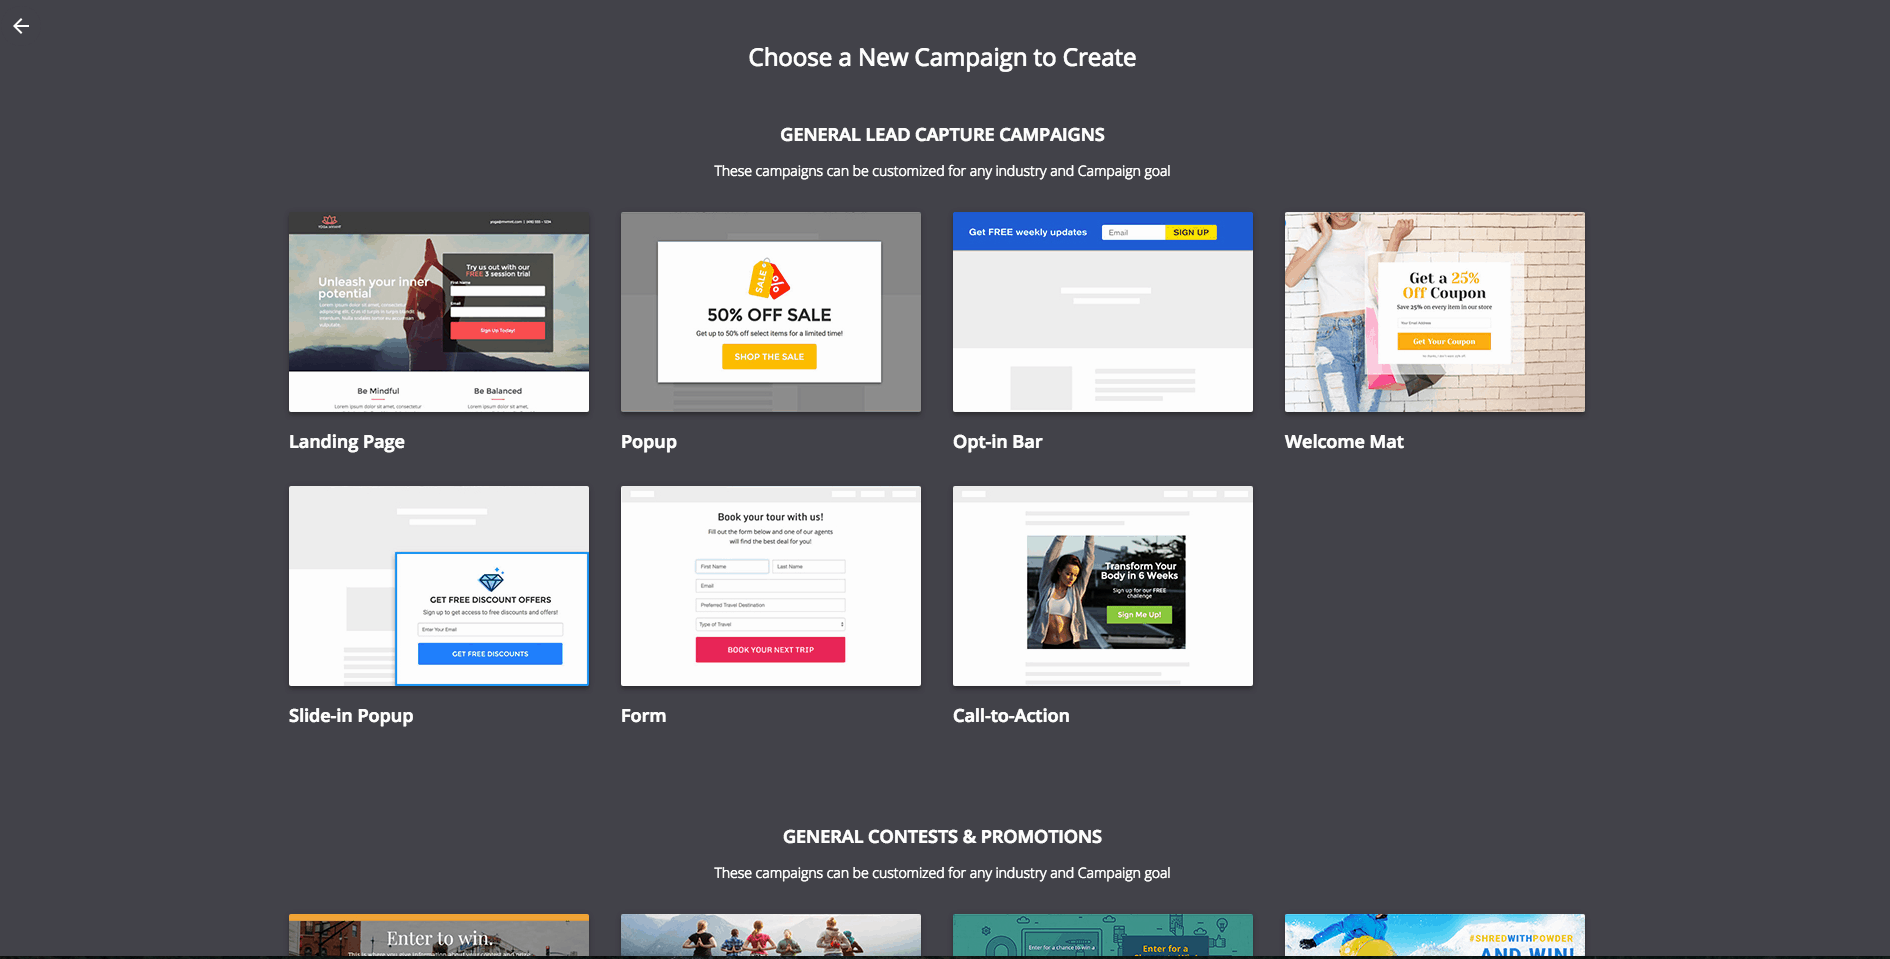 wishpond Optimize your landing page with pop-ups, welcome mats, and opt-in bars